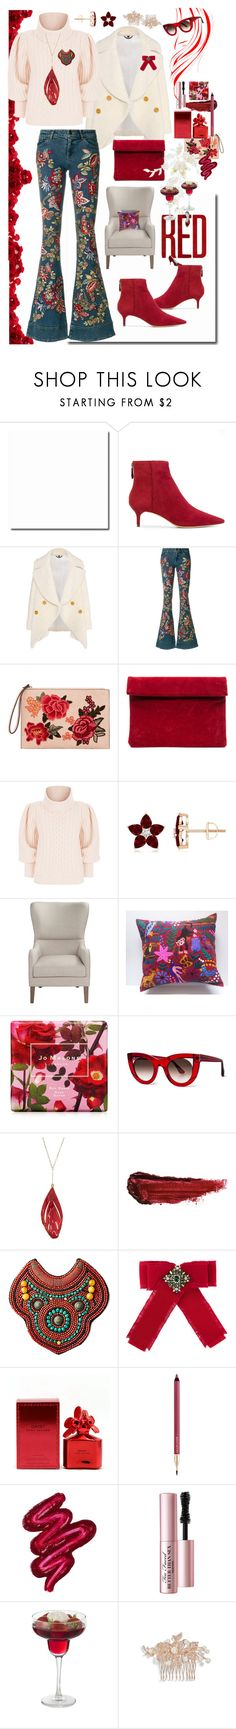 """Choose Joy🌺🌹🌸"" by bm-bojanamilanovic ❤ liked on Polyvore featuring Alexandre Birman, Burberry, Alice + Olivia, MANGO, Temperley London, Jo Malone, Thierry Lasry, Aurélie Bidermann, By Terry and Gucci"